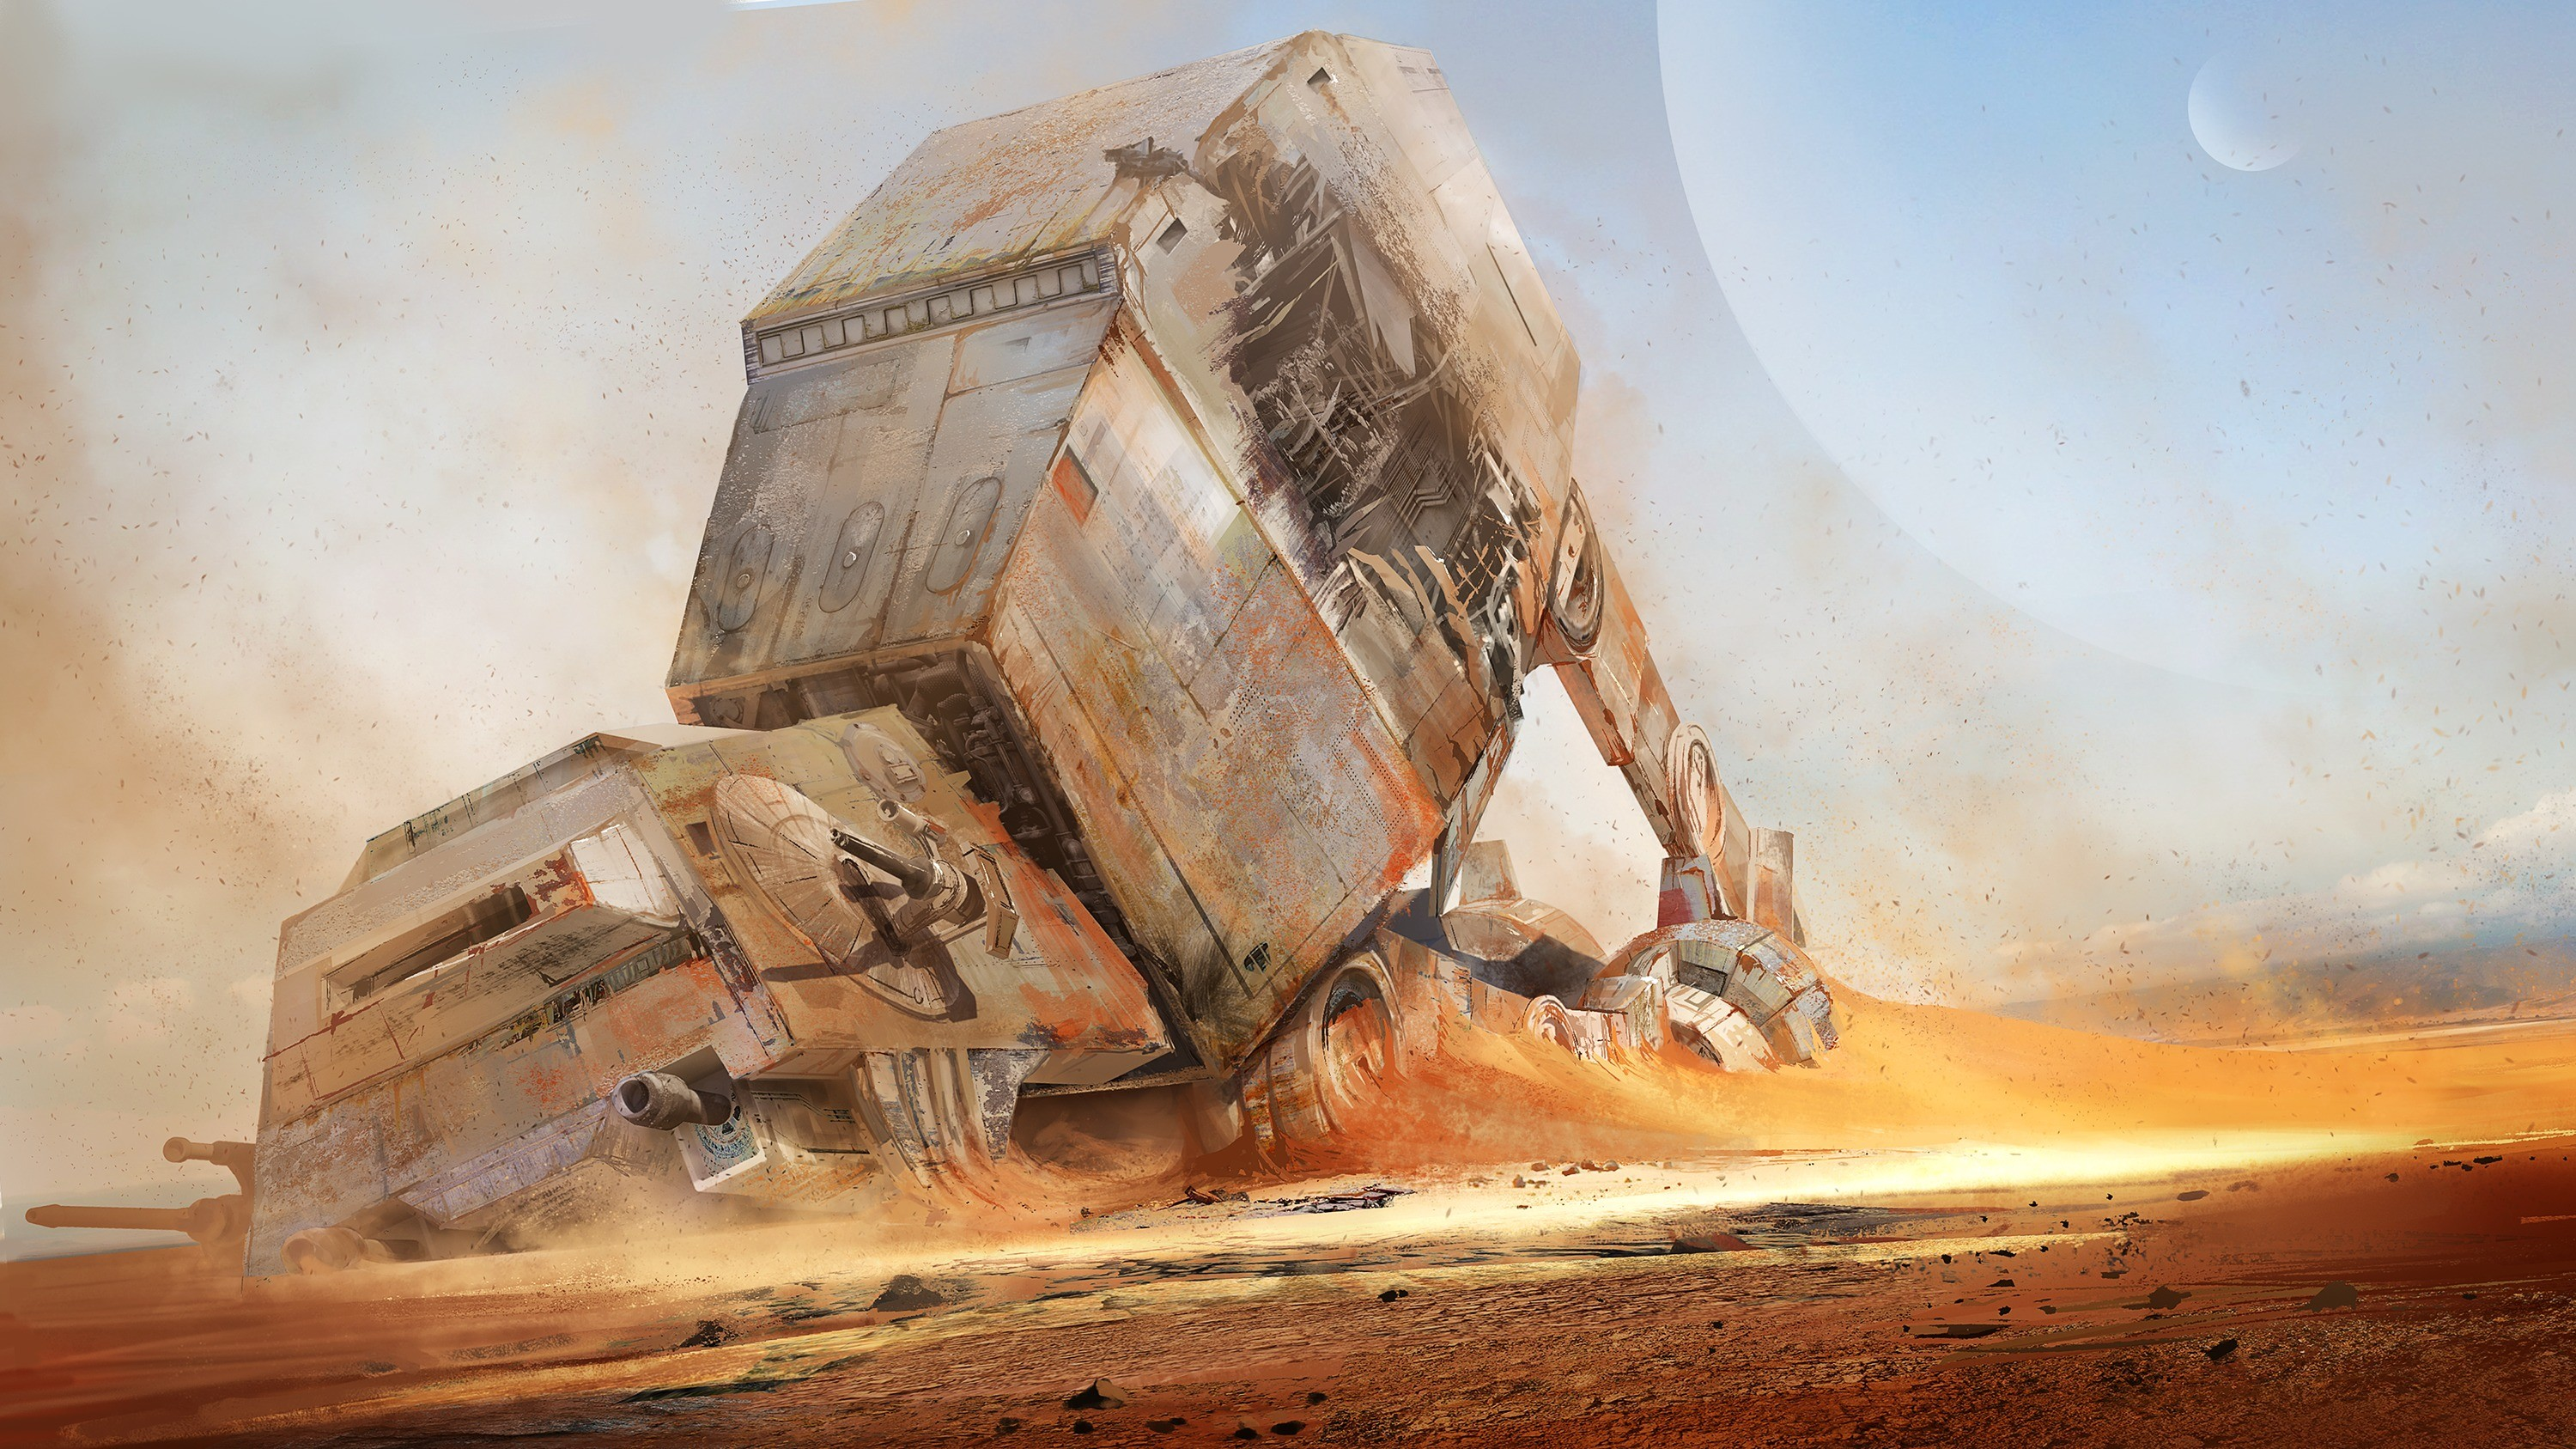 Dual Monitor Star Wars Wallpapers Images